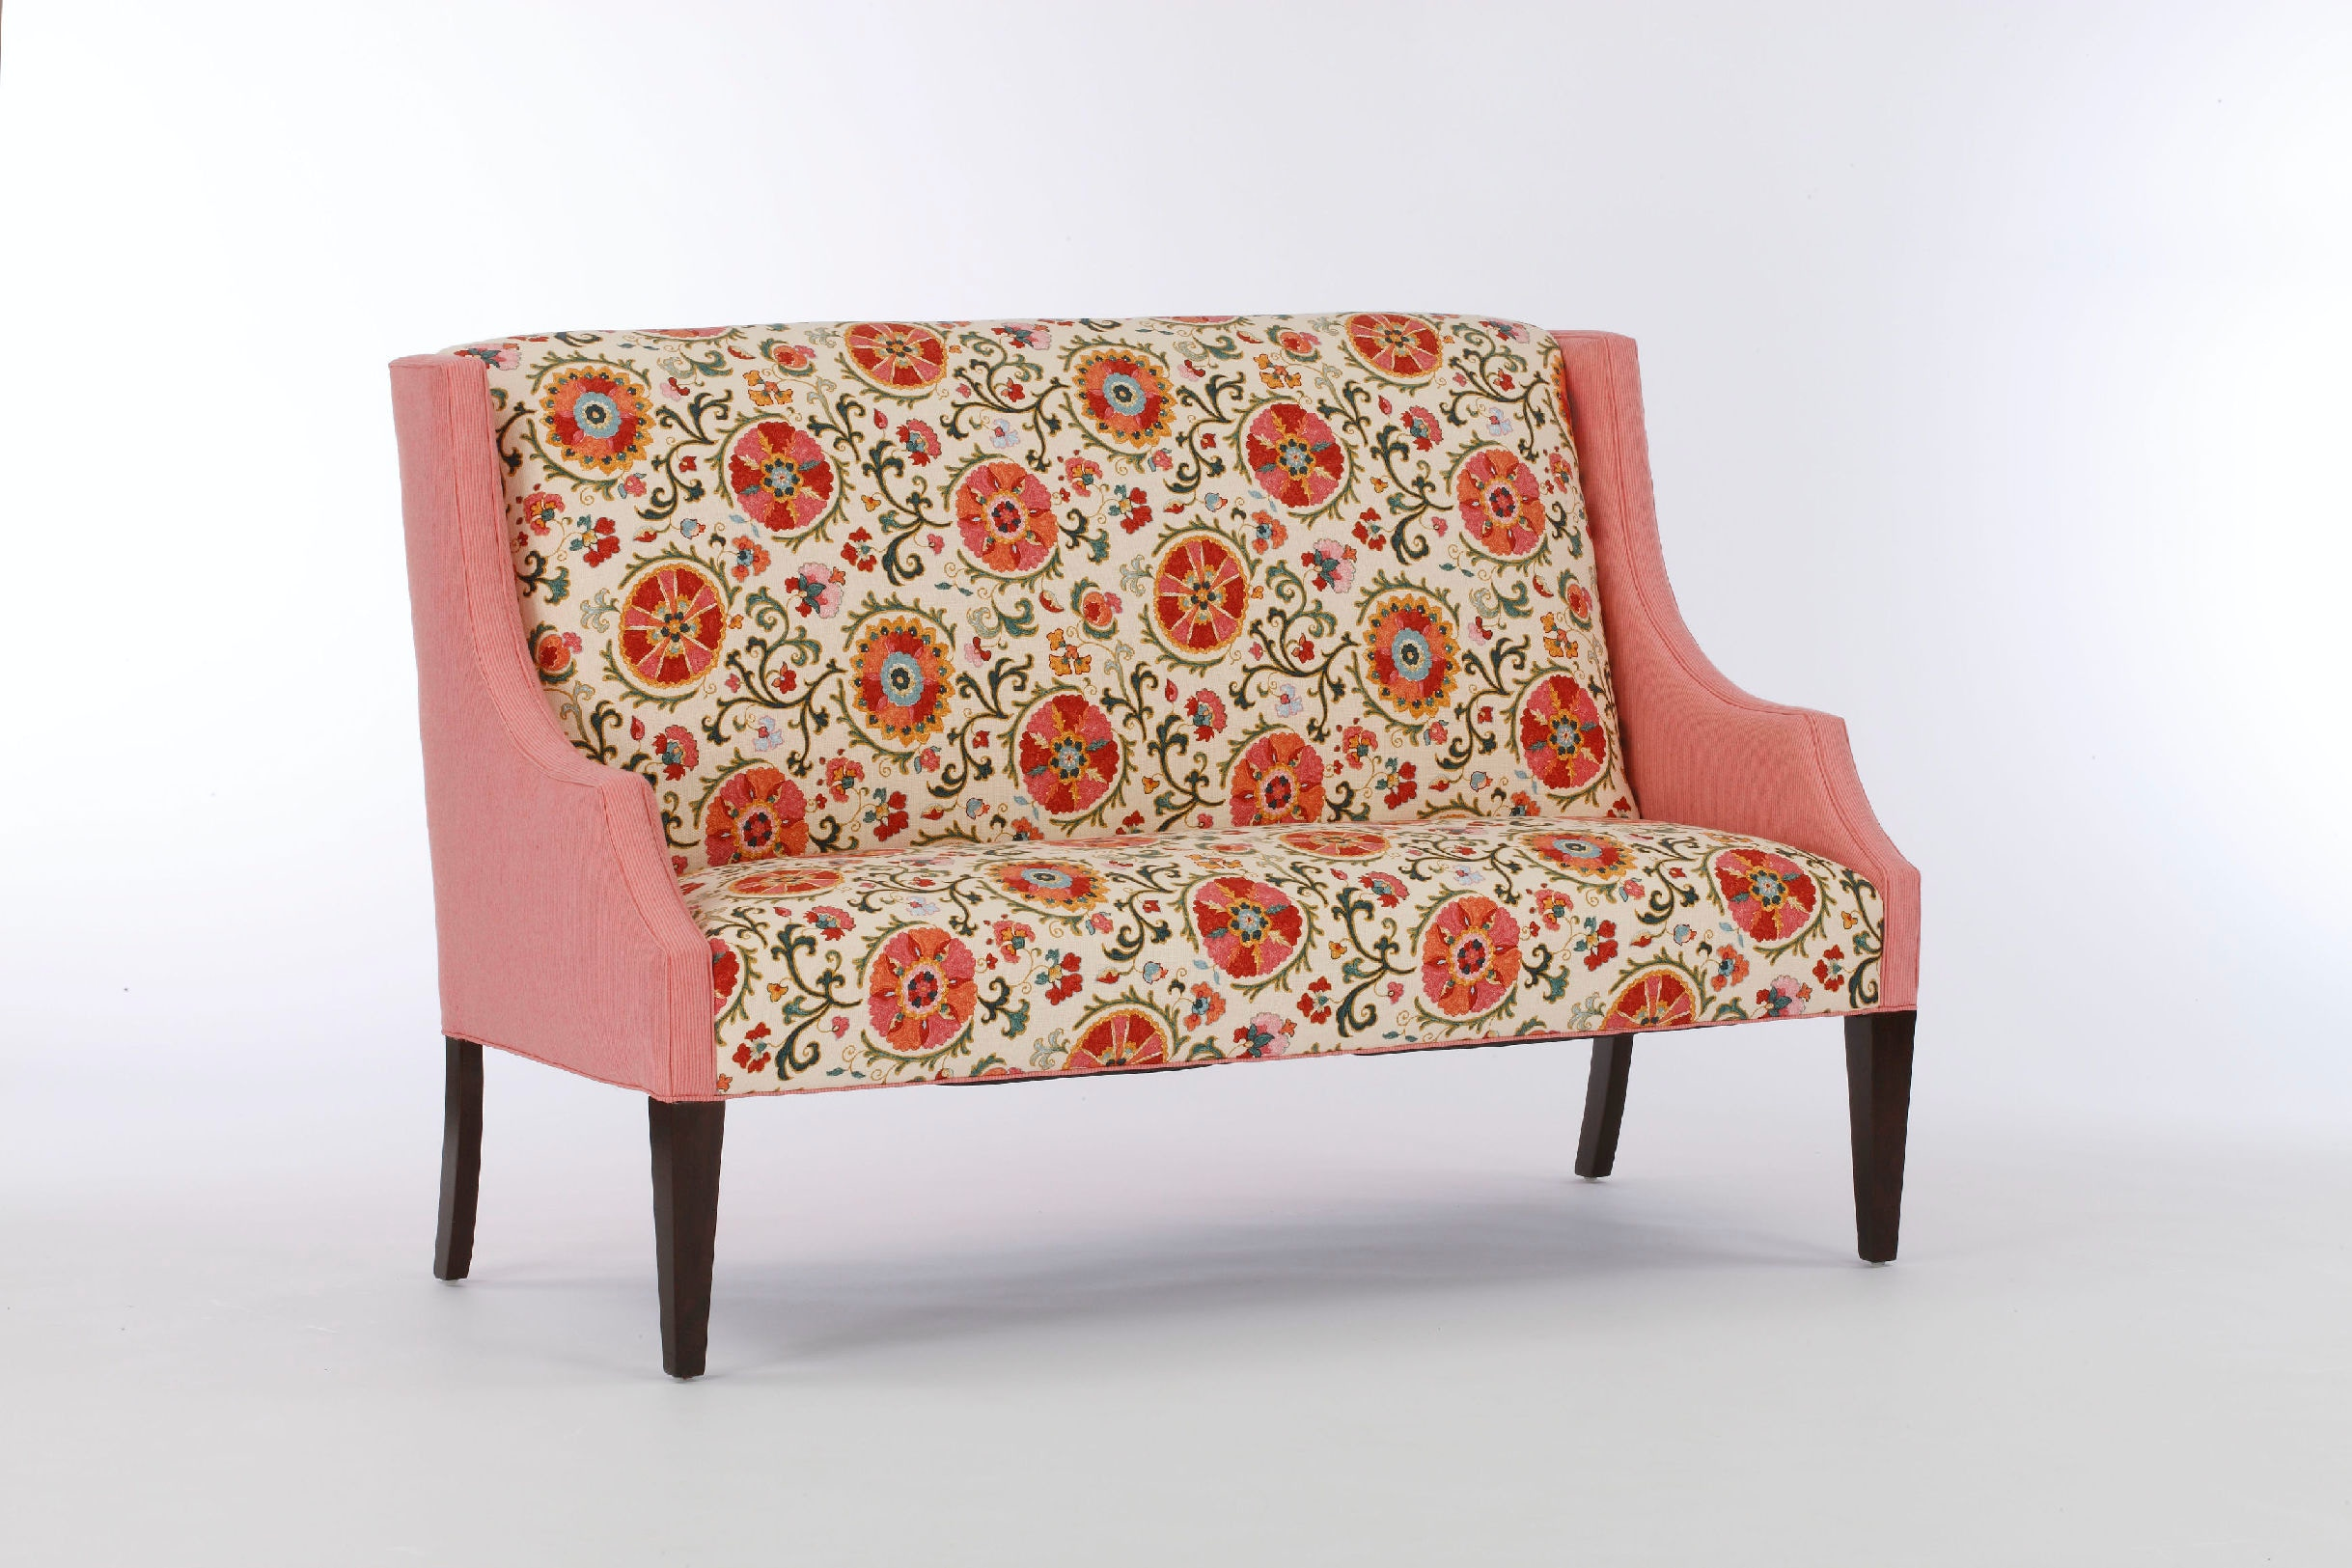 Stacy Select Turner Settee 1412 Amazing Pictures